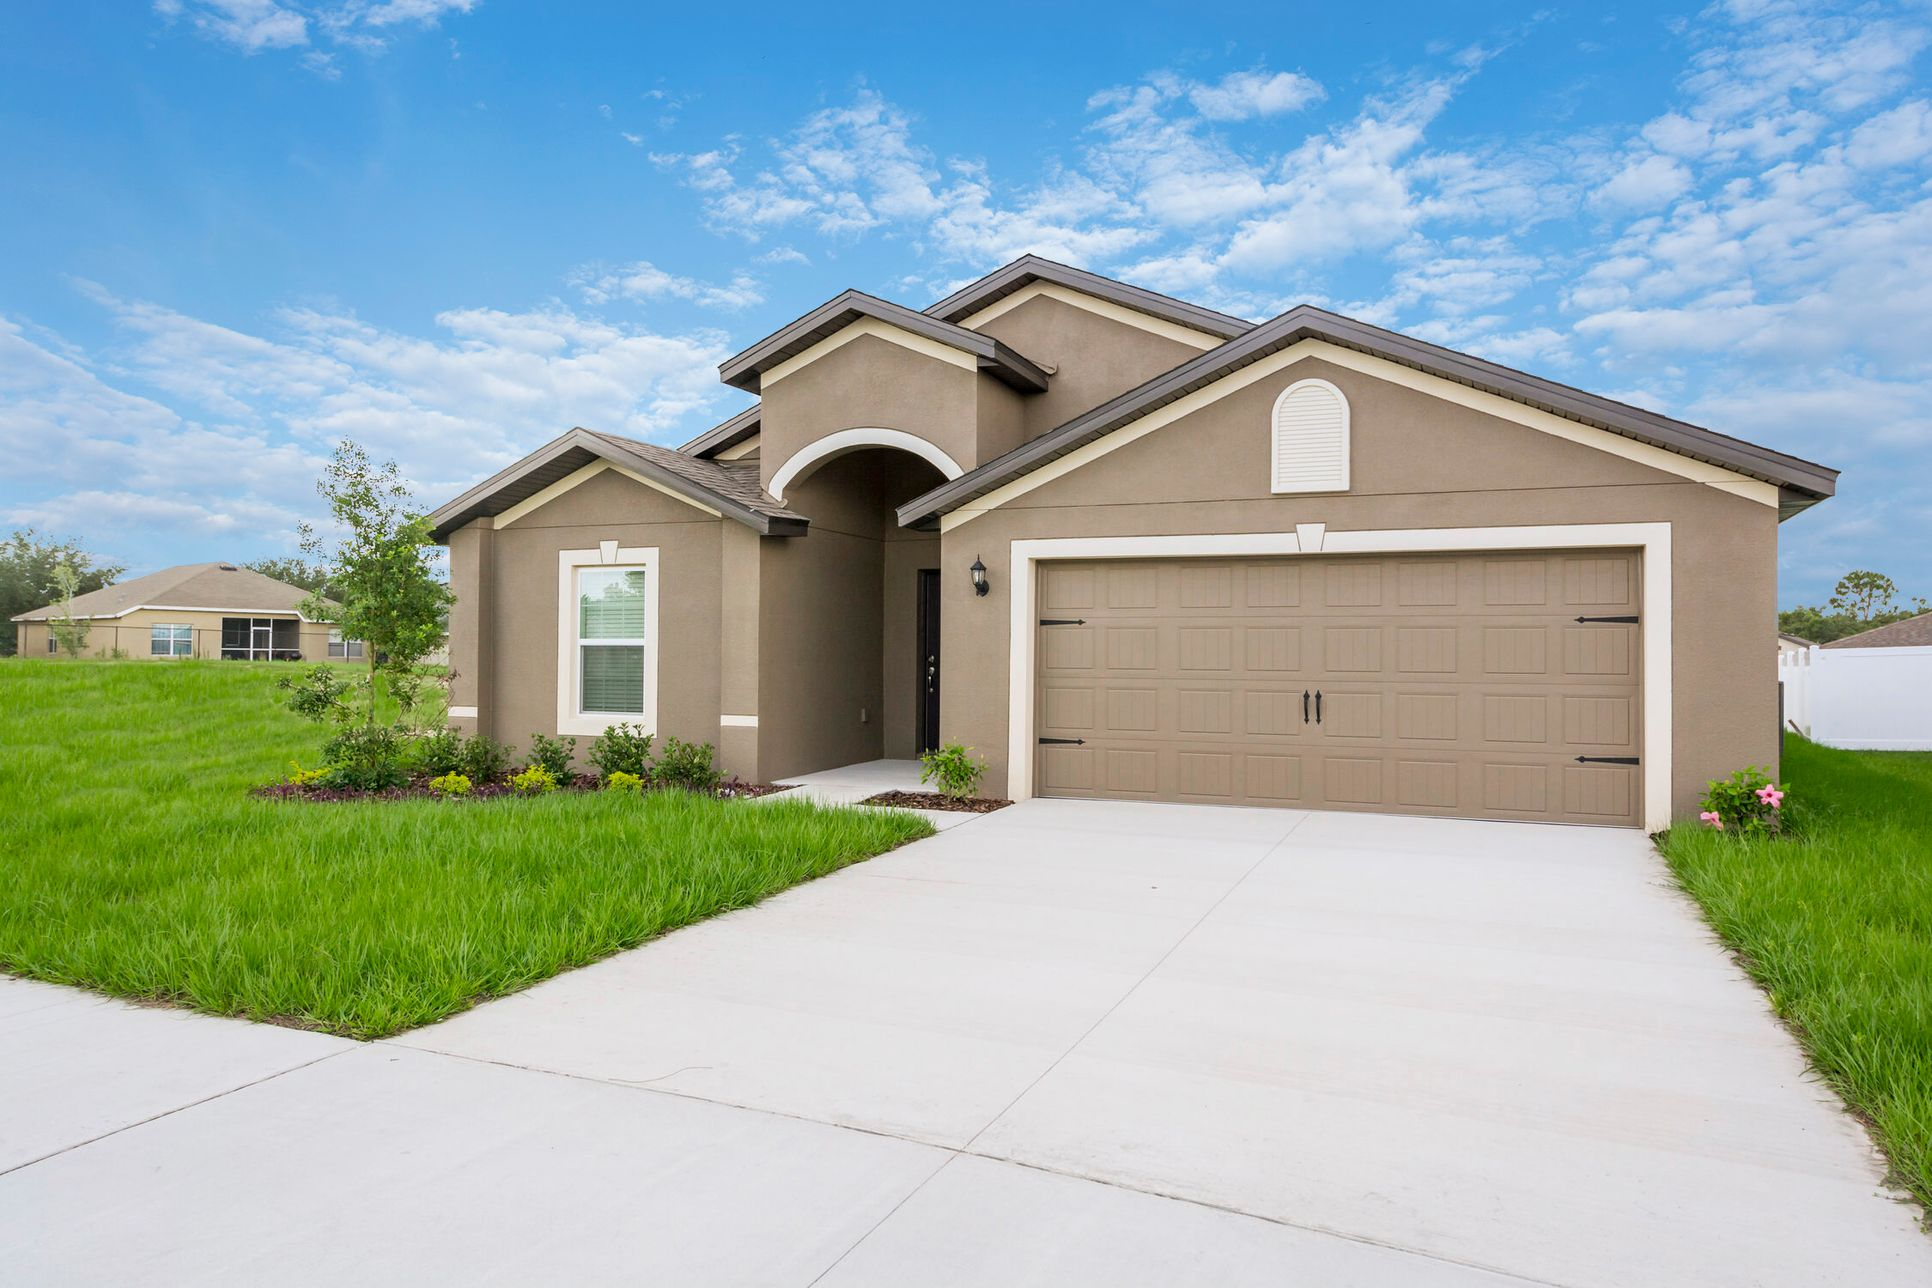 The Estero by LGI Homes:Multiple Spacious Bedrooms in this Brand-new Home